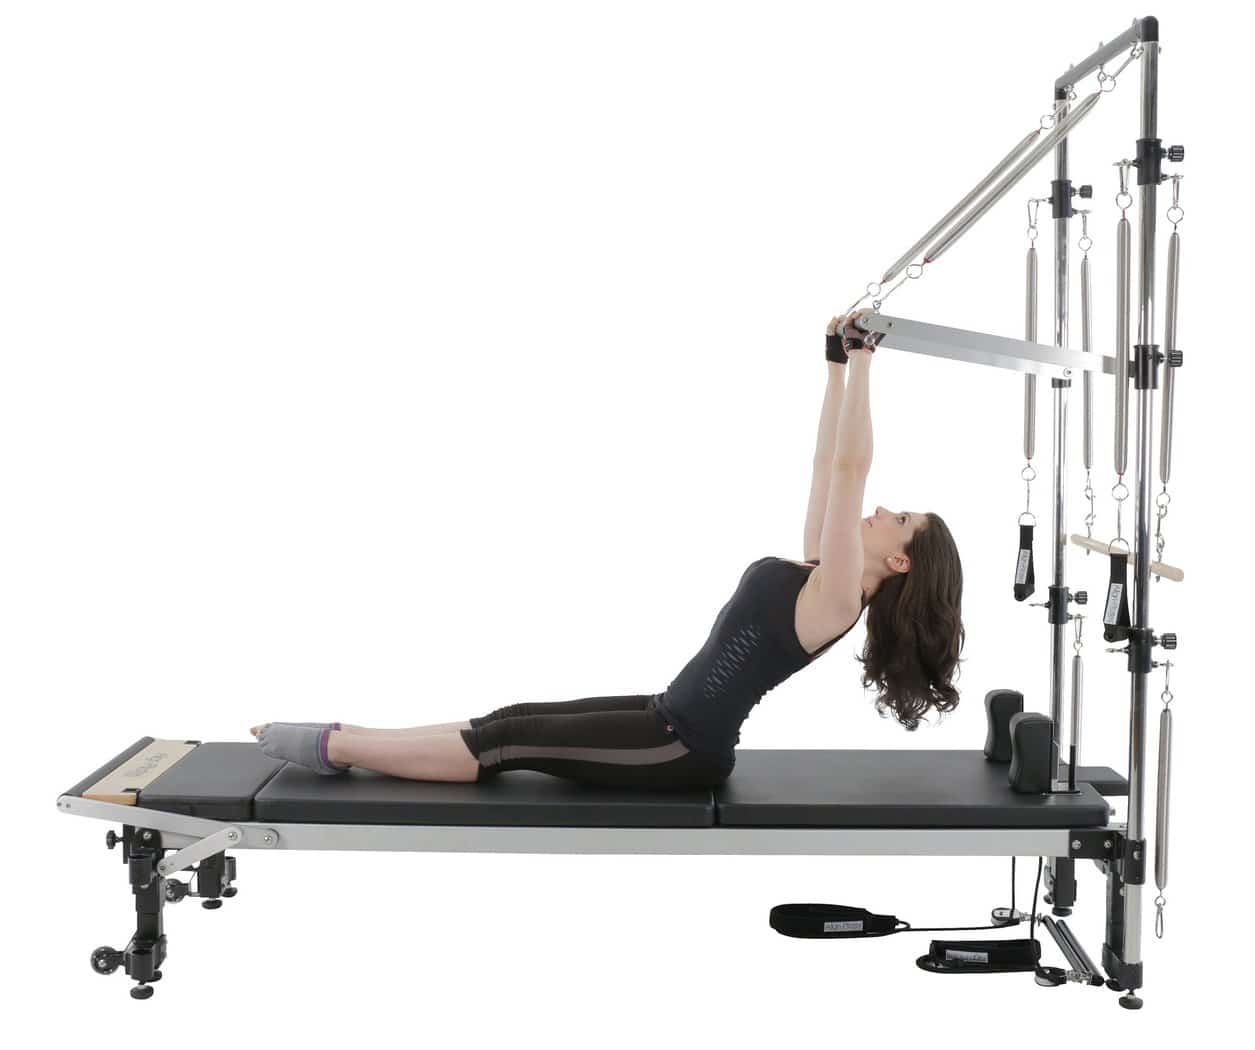 Align Pilates Combo Pilates Chair Ii Flat Packed: C2_Pro_half_cad_action